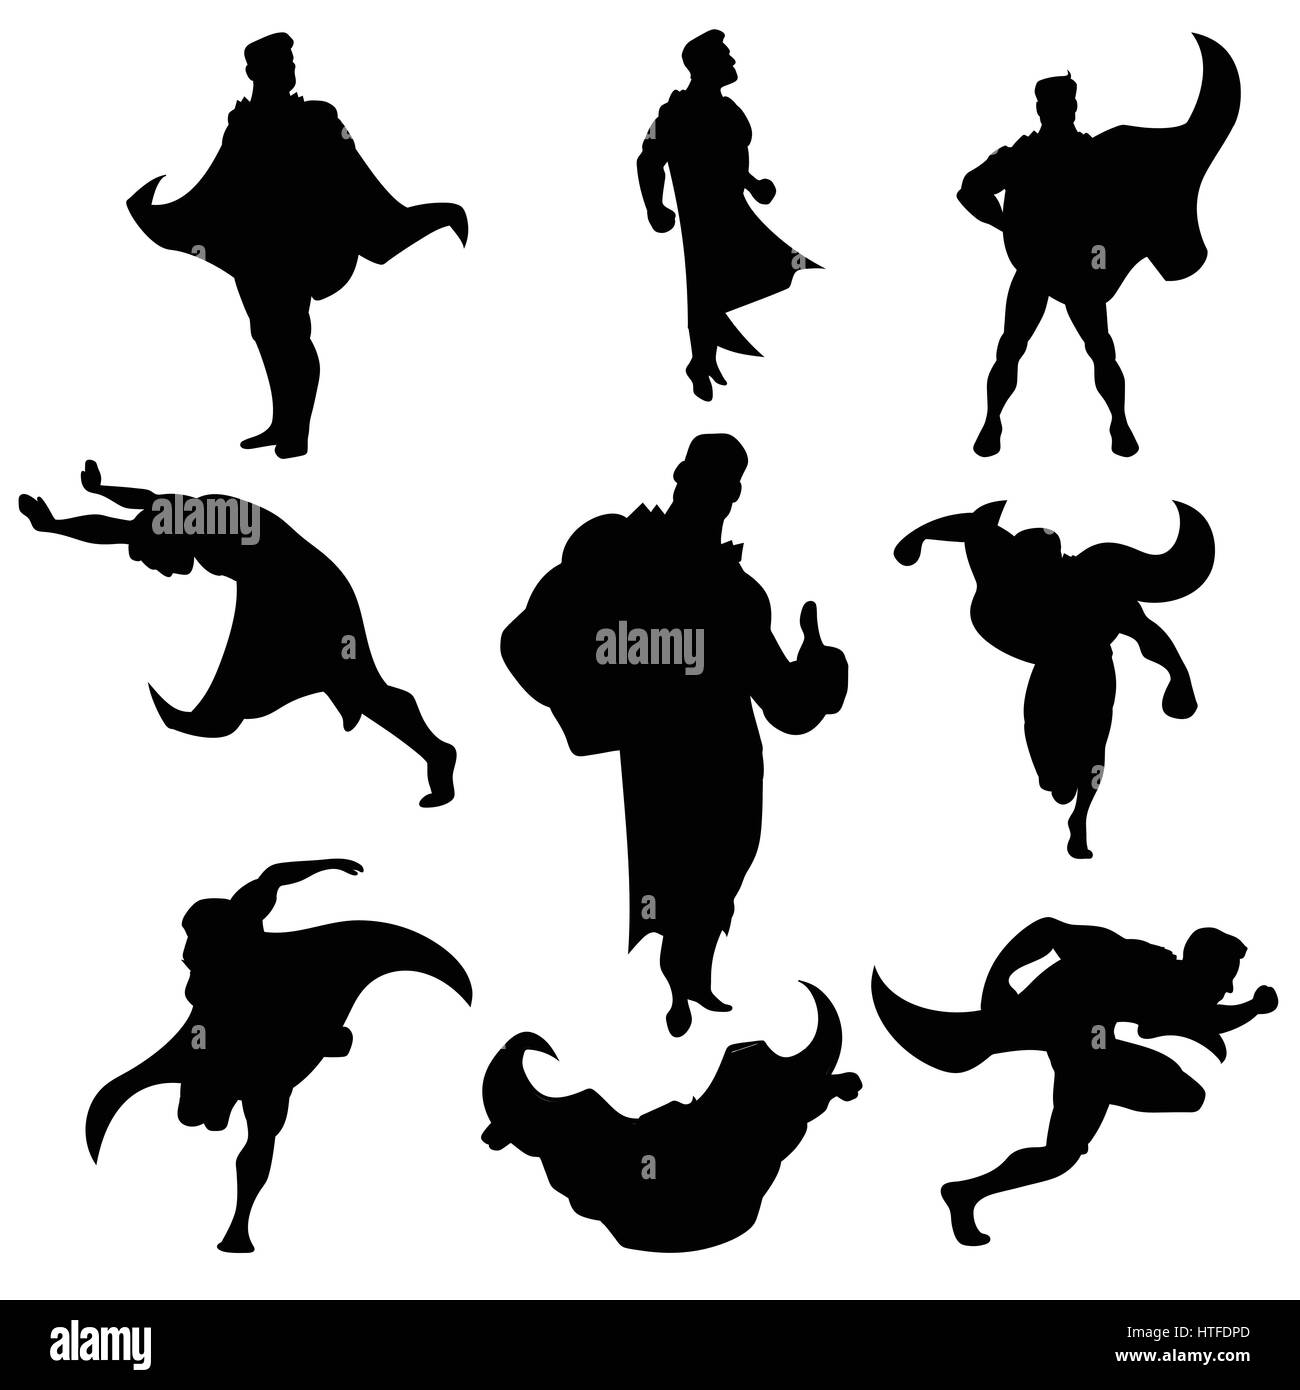 Superhero silhouettes set Stock Vector Art & Illustration ...